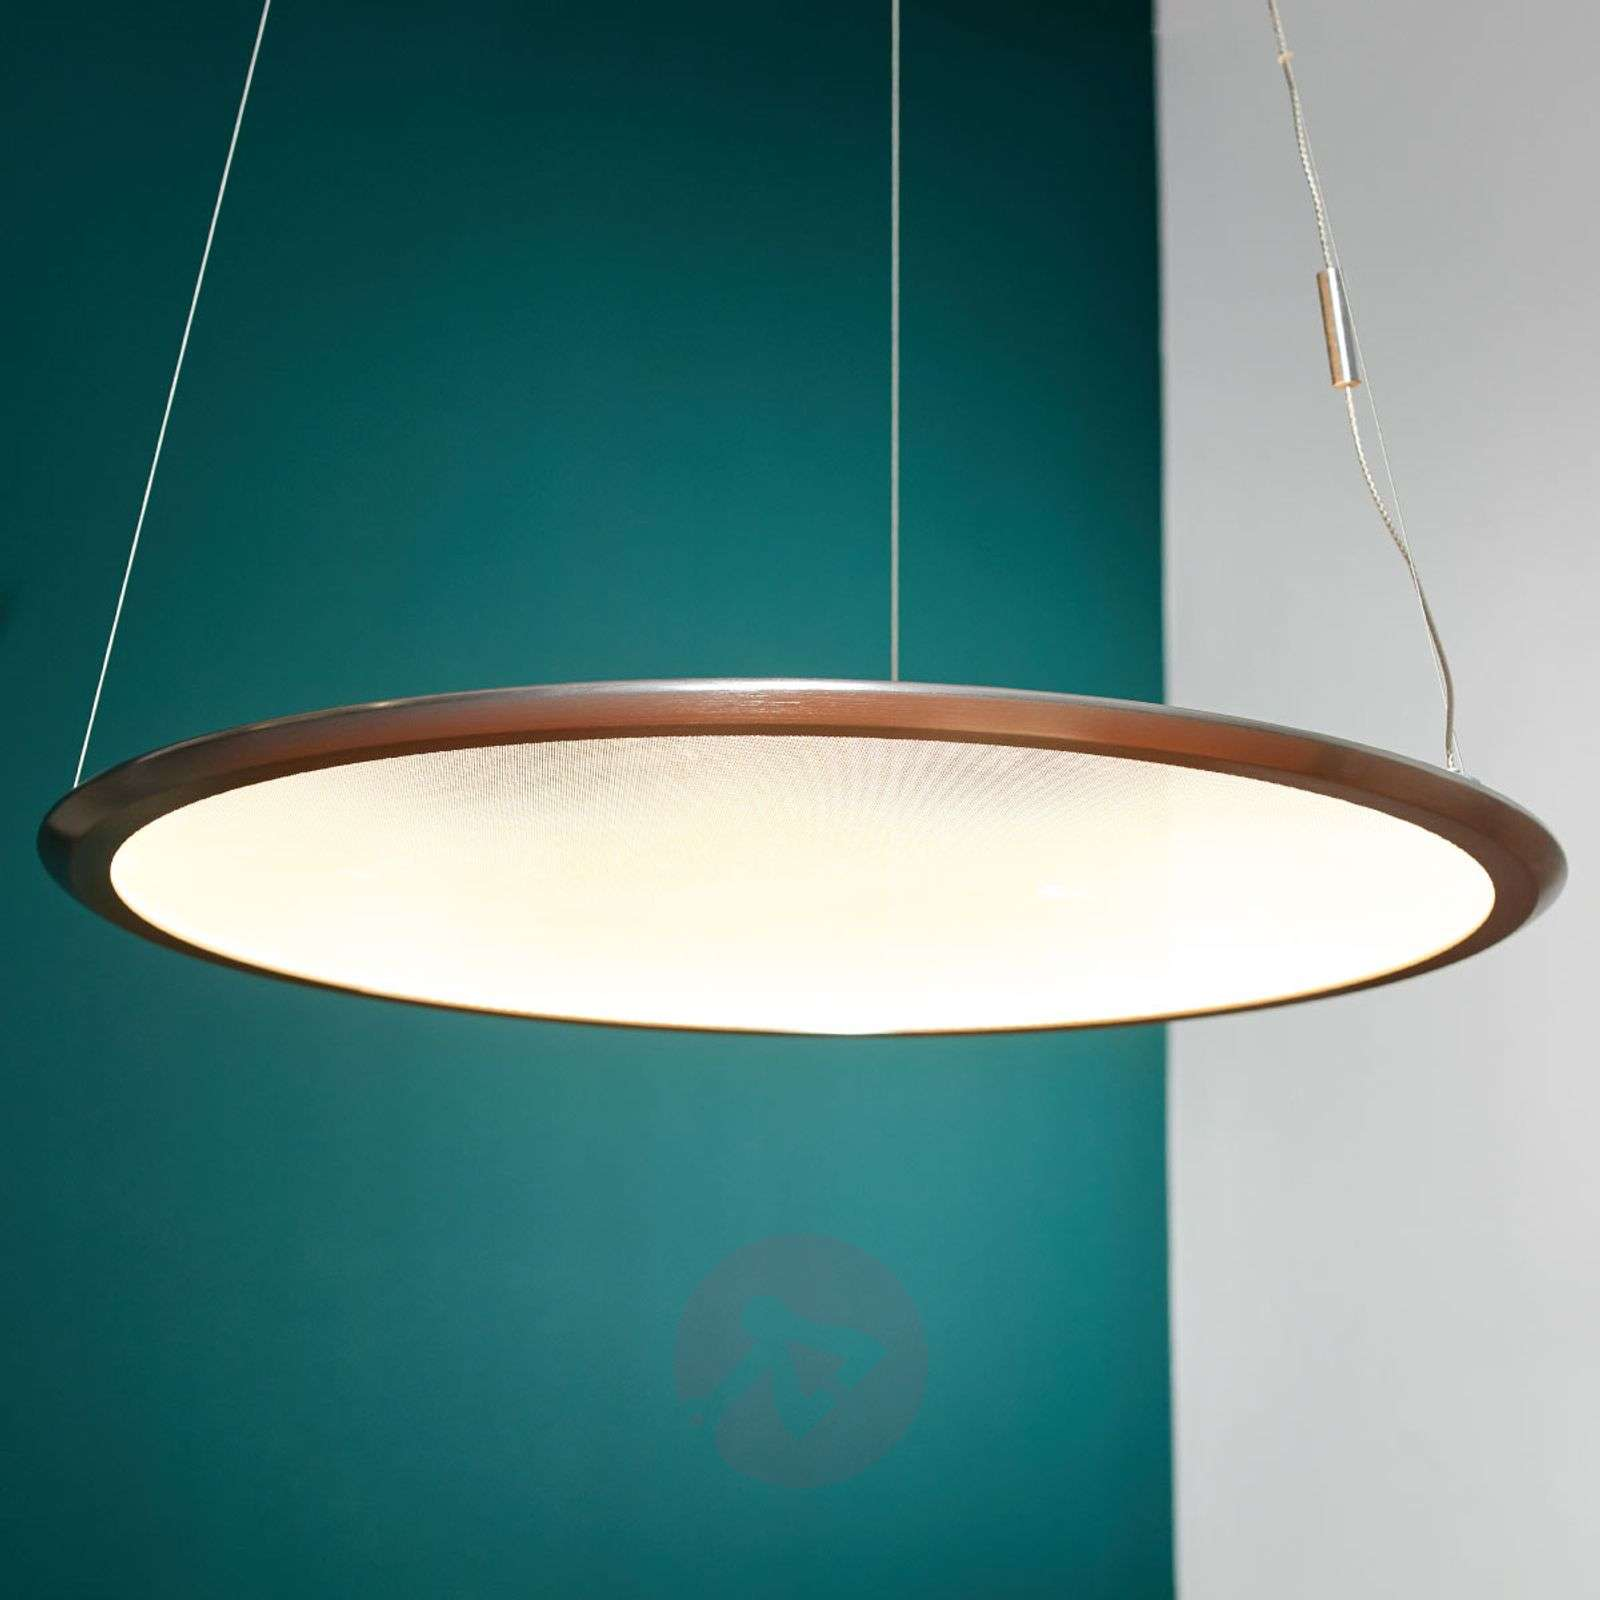 Design hanglamp Discovery met LEDs-1060023-01